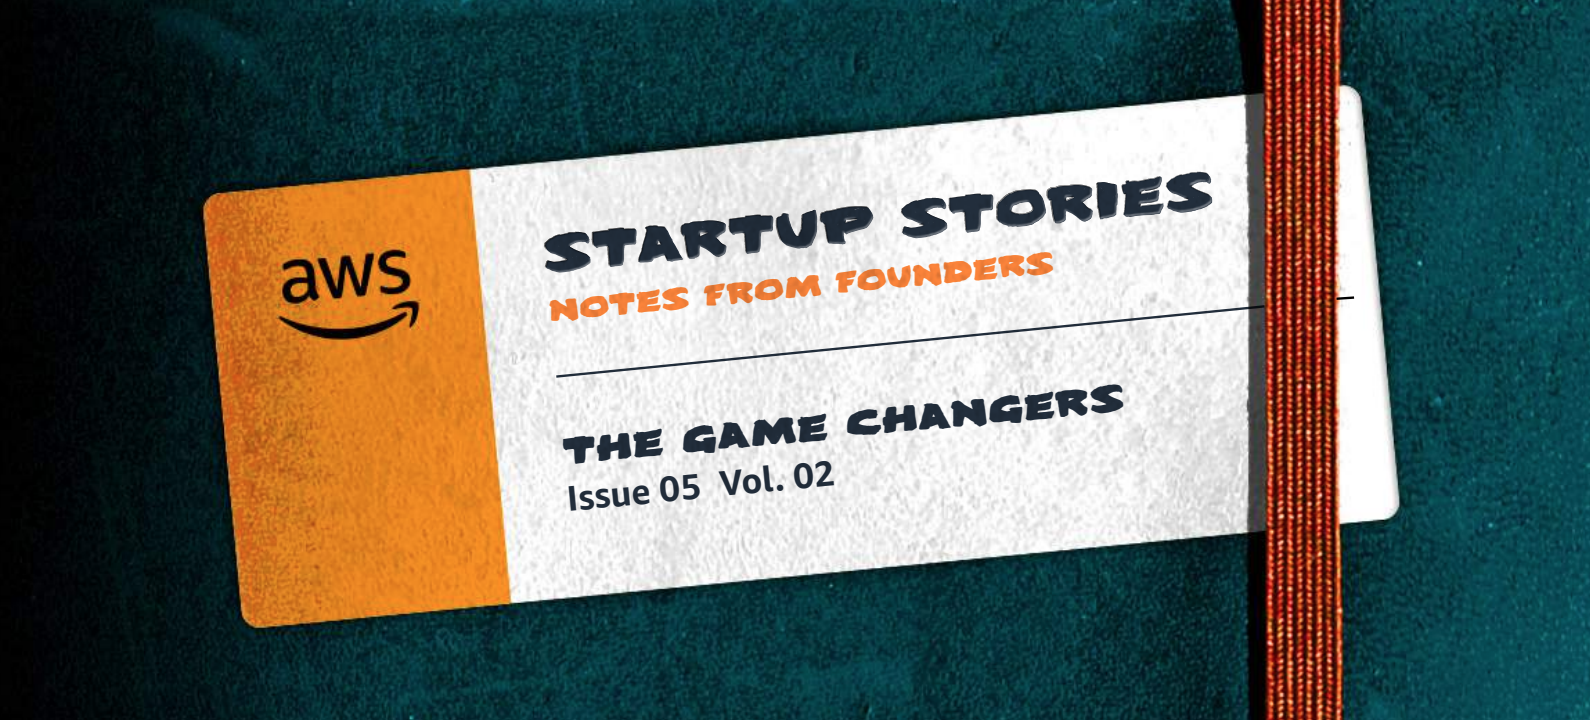 Startup_Stories_Vol2_Gamechangers_Cover